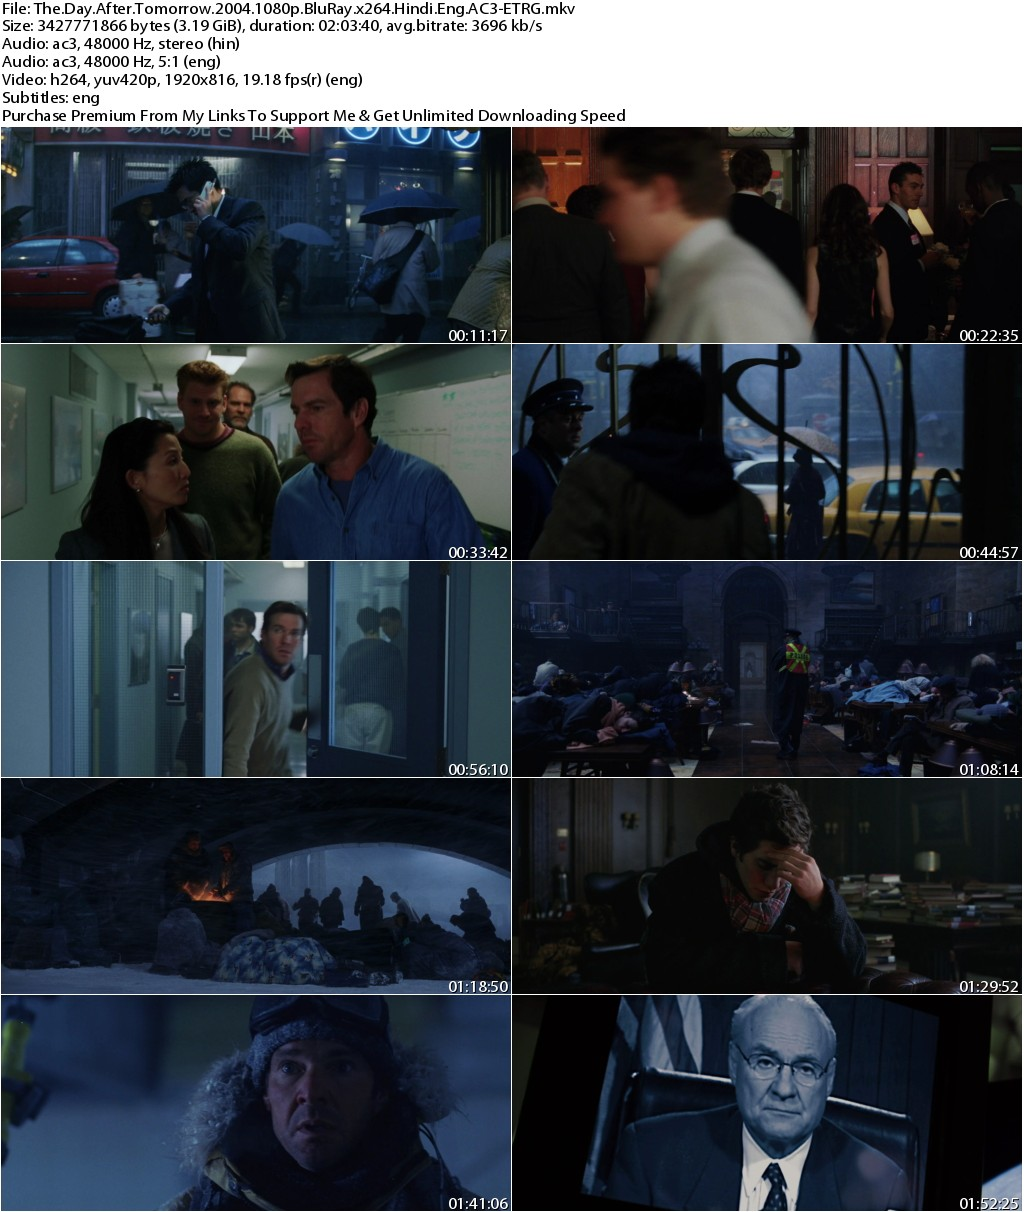 The Day After Tomorrow (2004) 1080p BluRay x264 [Hindi+Eng] AC3-ETRG